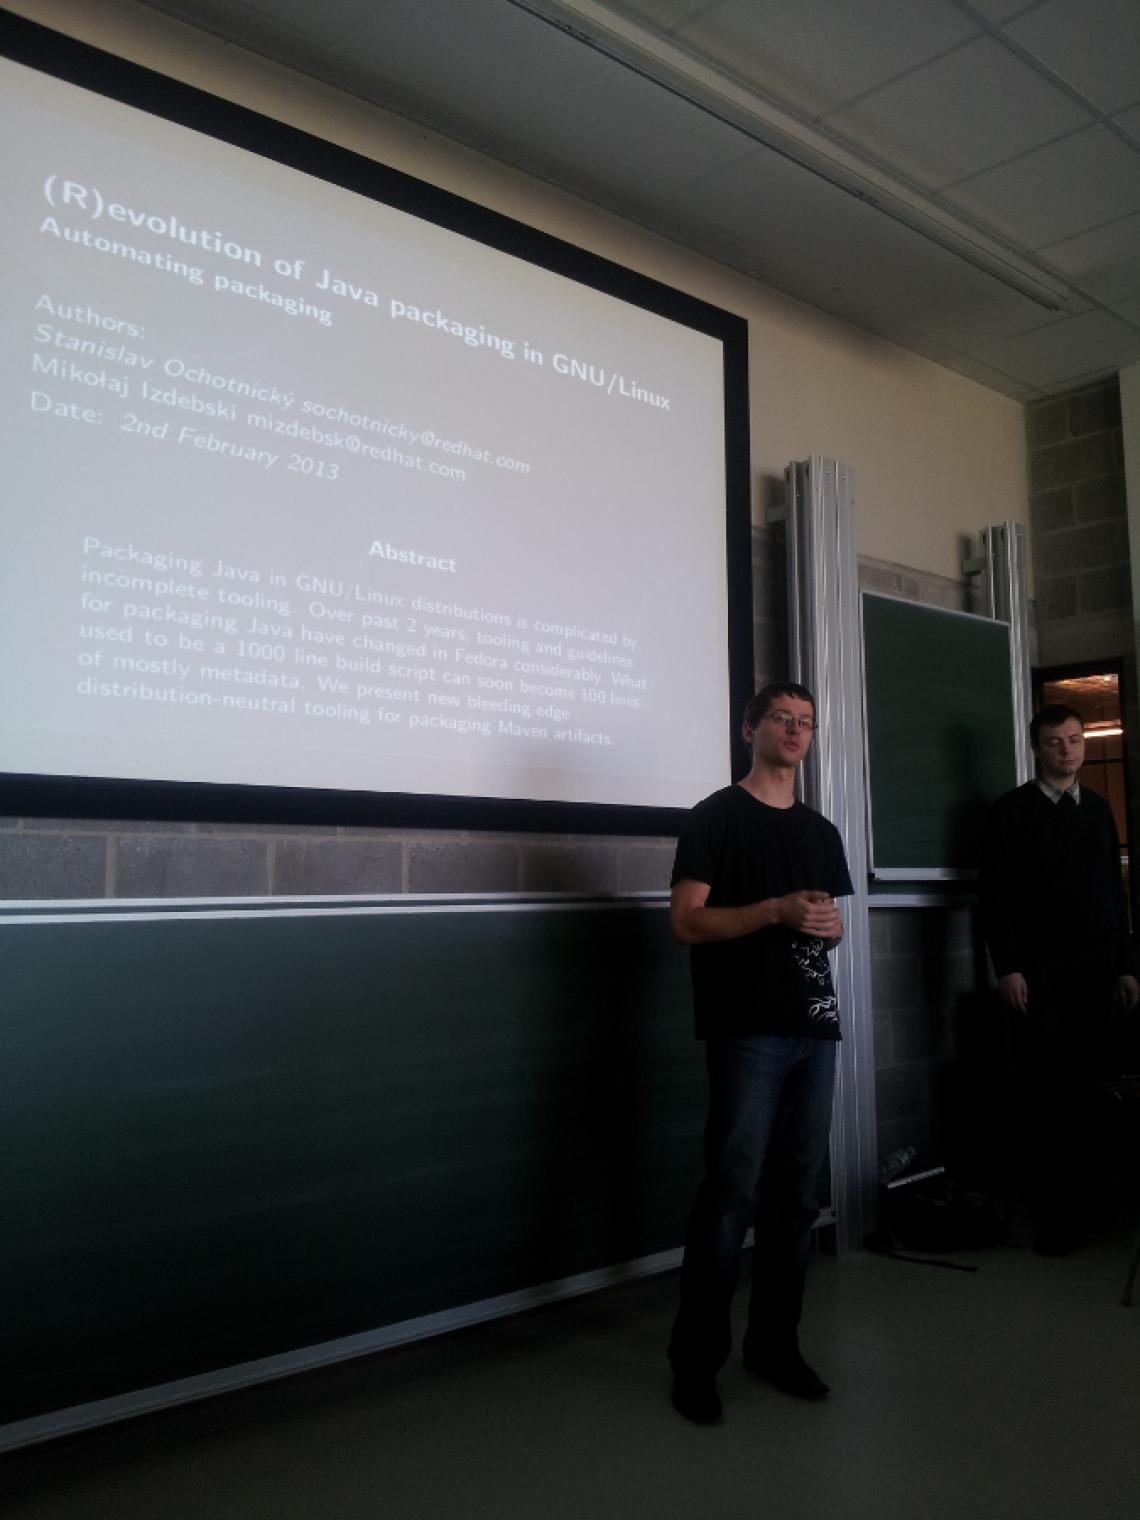 A talk at FOSDEM